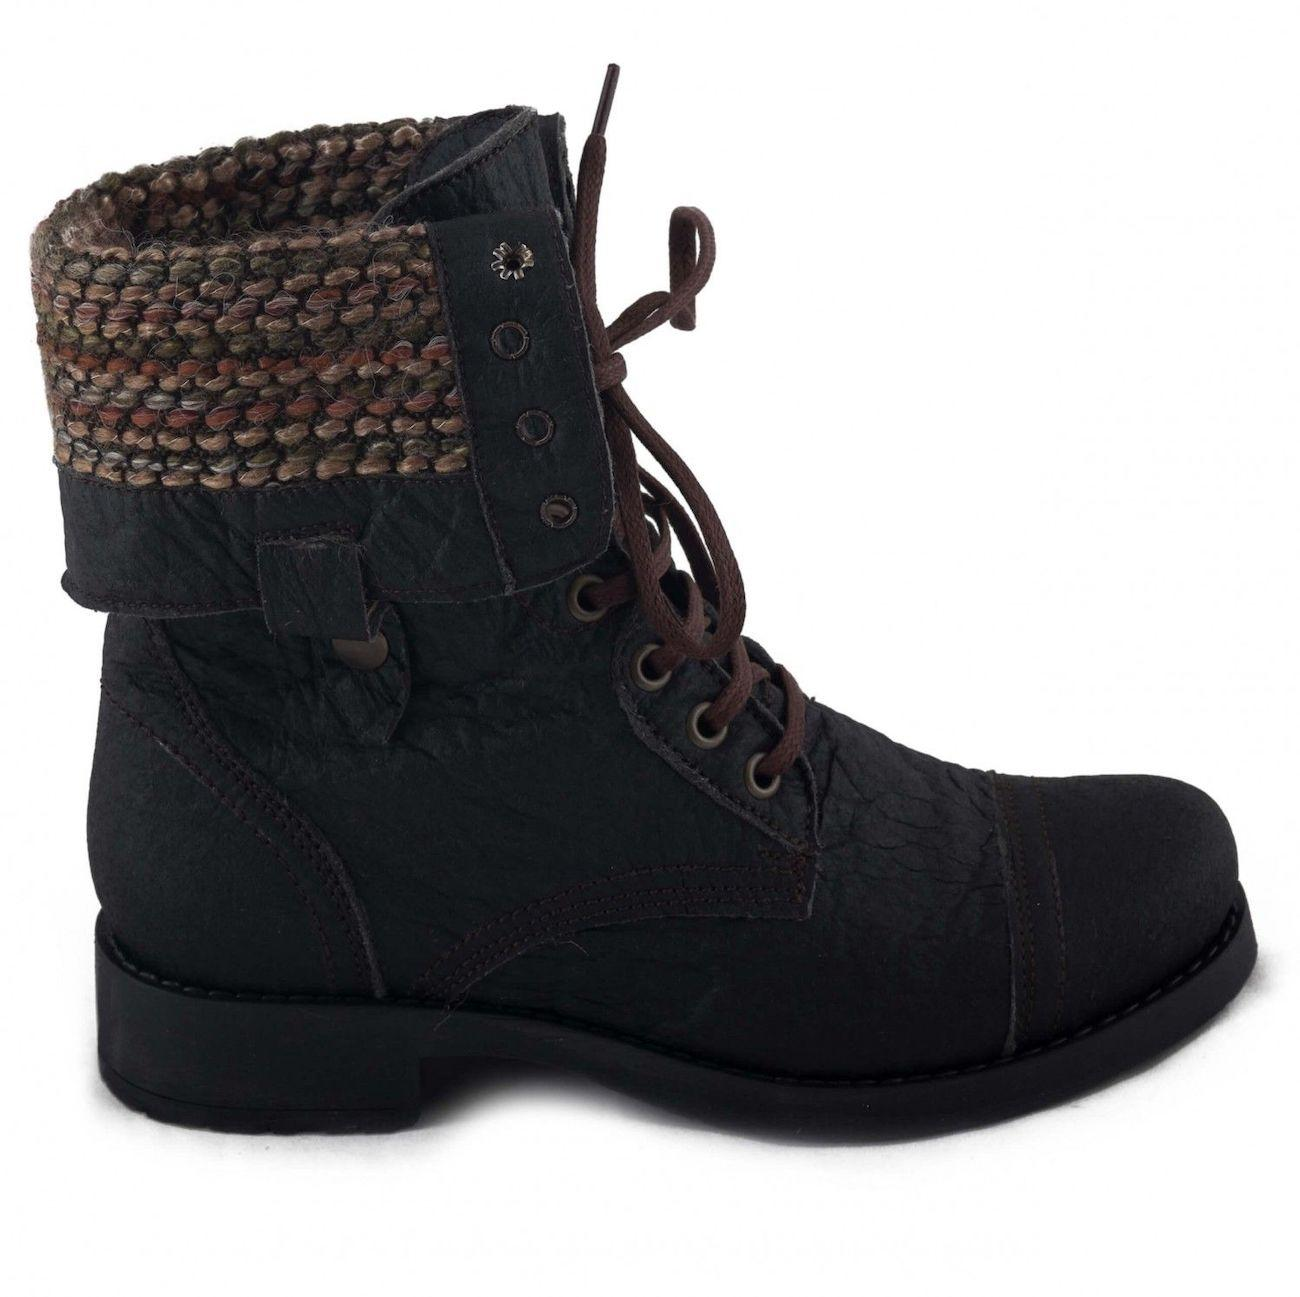 vegan-winter-boots-nae-1574190101298.jpg